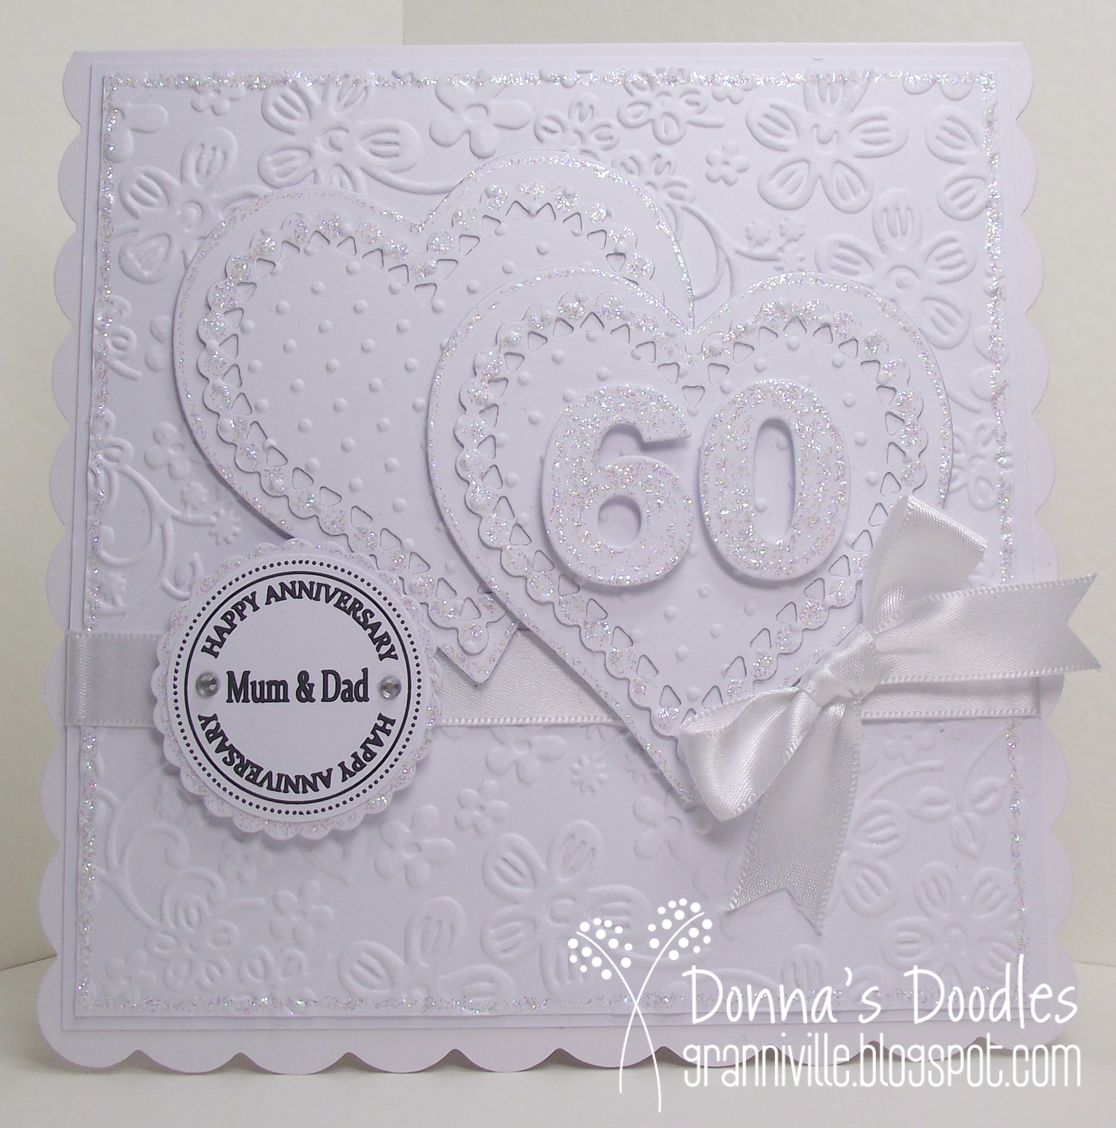 Superb 60th Wedding Anniversary Card Making Ideas Part - 4: [ Donna Doodles Wedding Anniversary Cards ] - Love Anniversary Card Doodle  Hearts Doodles Christmas Greeting Card Free Vector By,donna S Doodles  Wedding ...